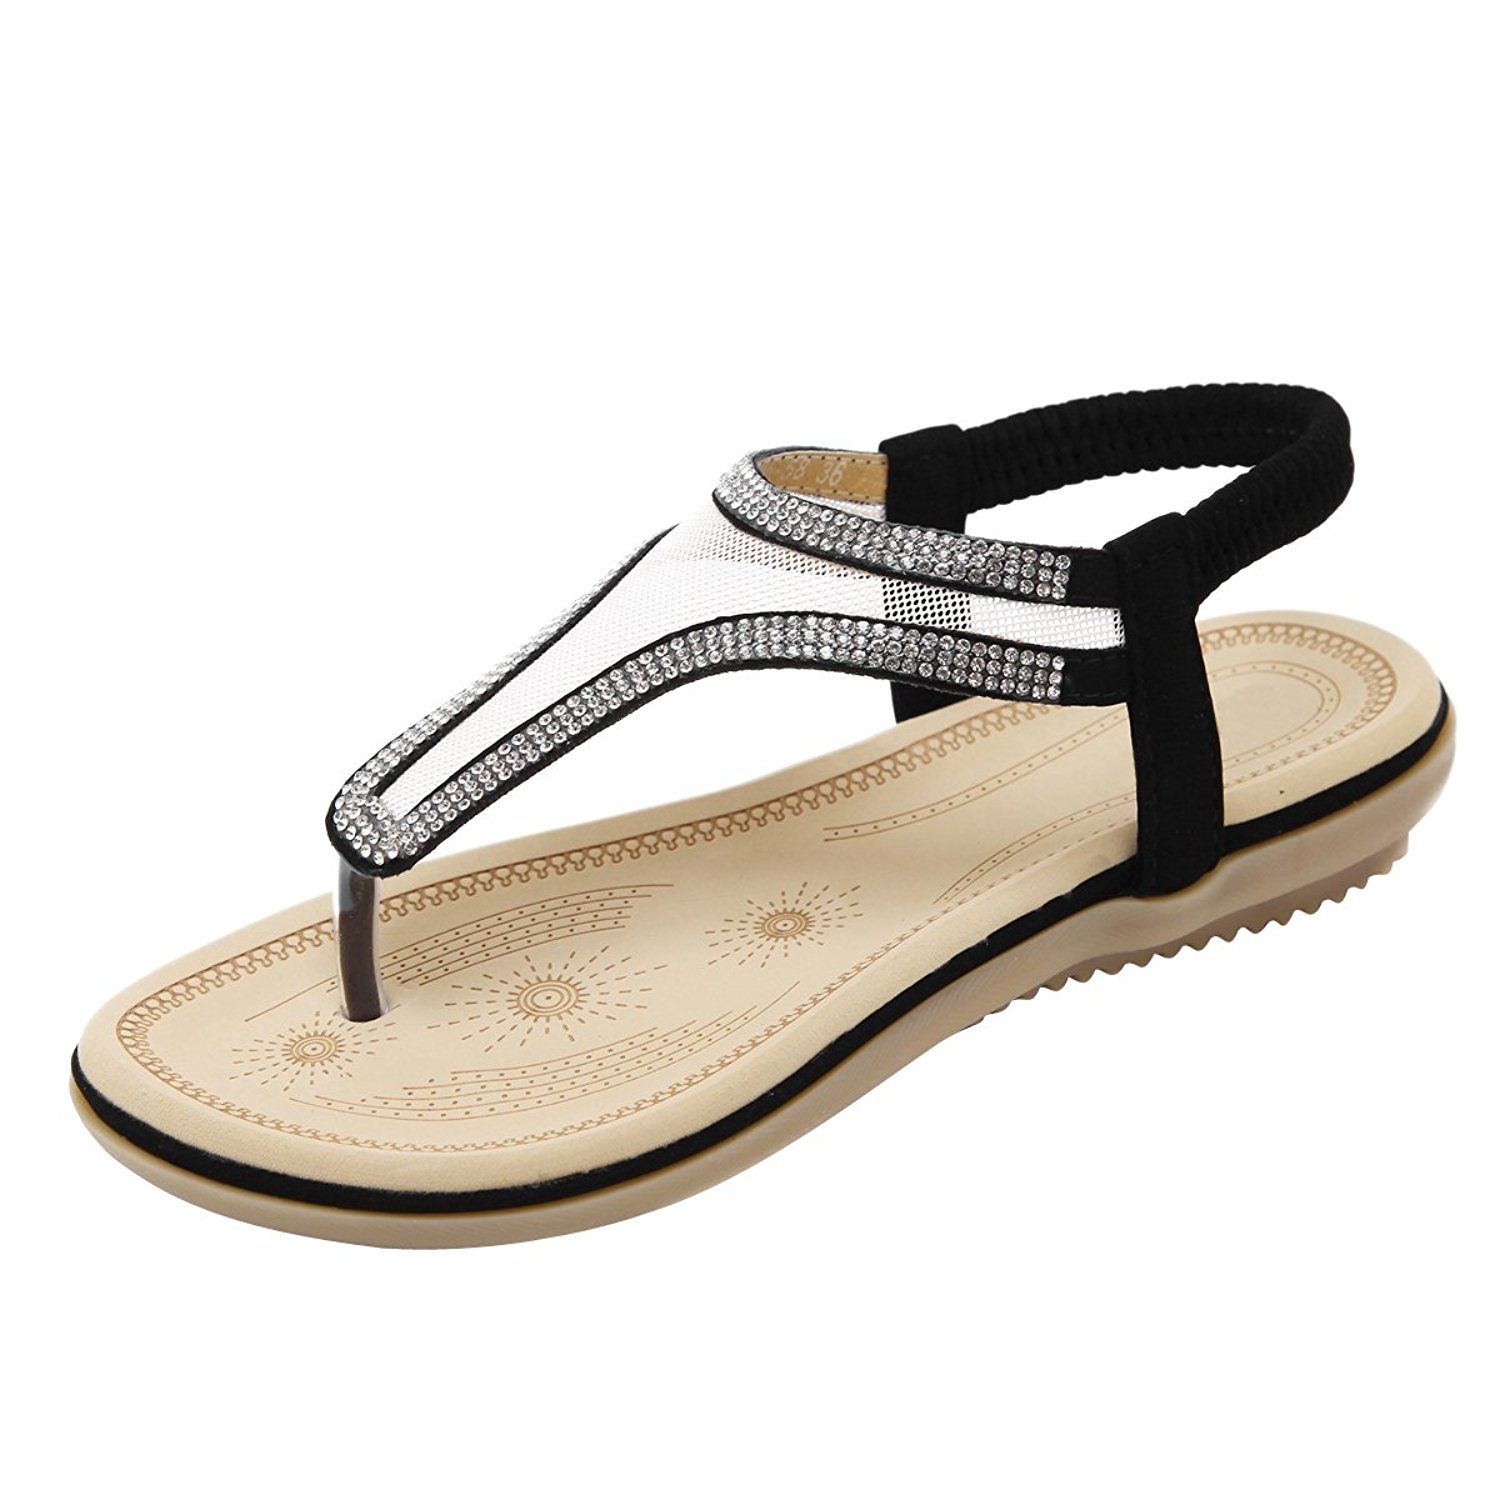 4614aabb3dcf Get Quotations · Dear Time Slingback Thong Sandals T-Strap Rhinestone Ankle  Strap Flip Flops